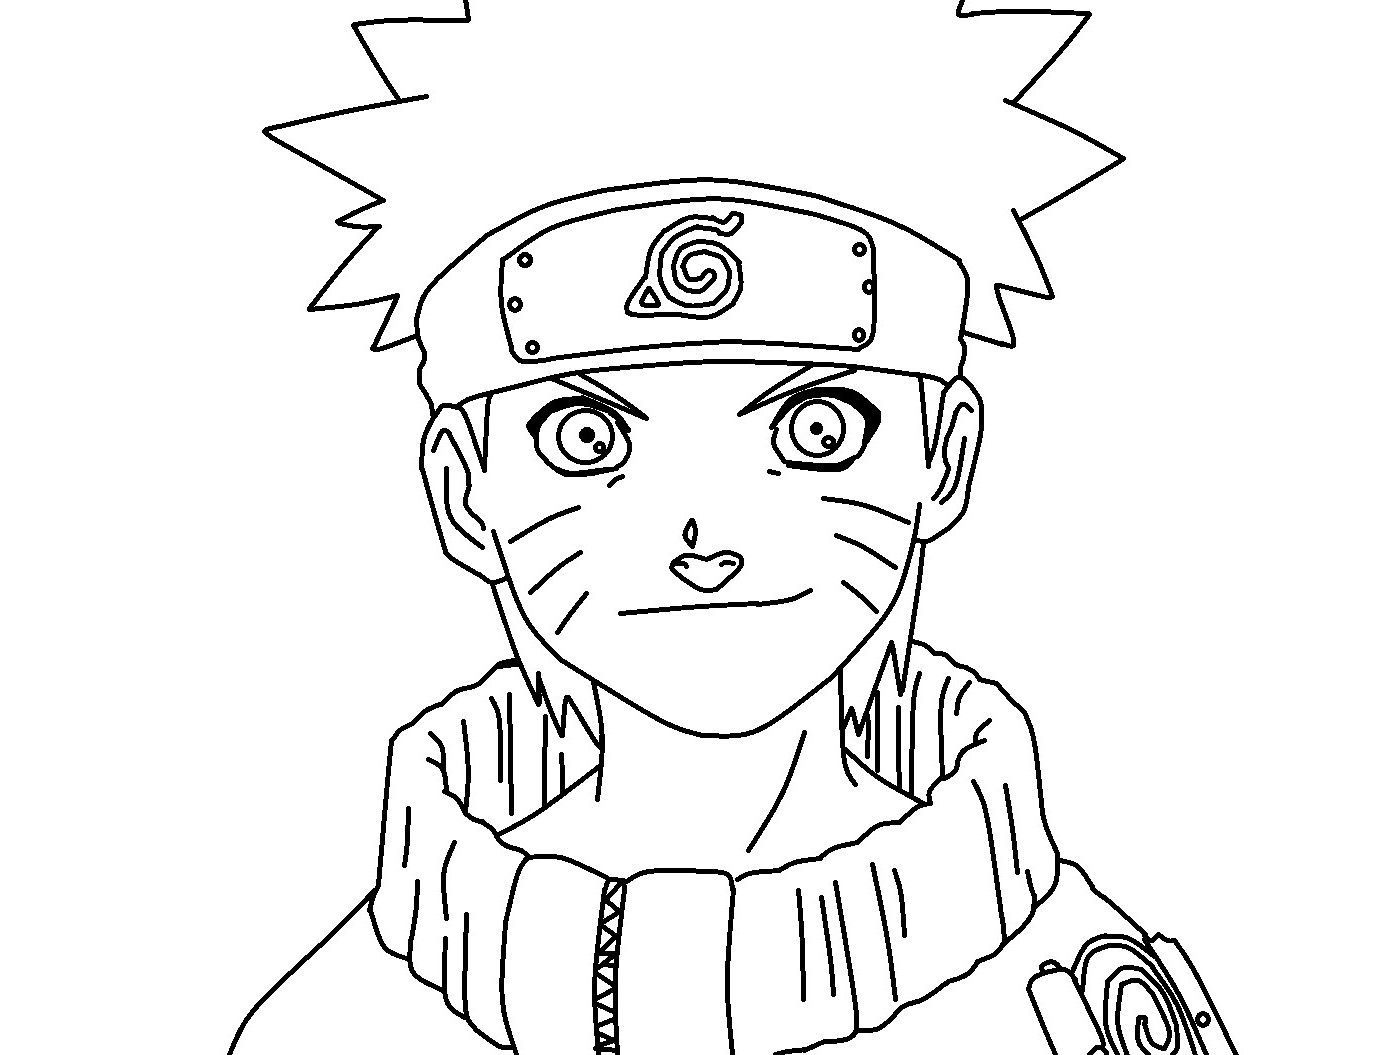 cute naruto coloring pages naruto anime coloring page for kids manga anime coloring coloring naruto cute pages